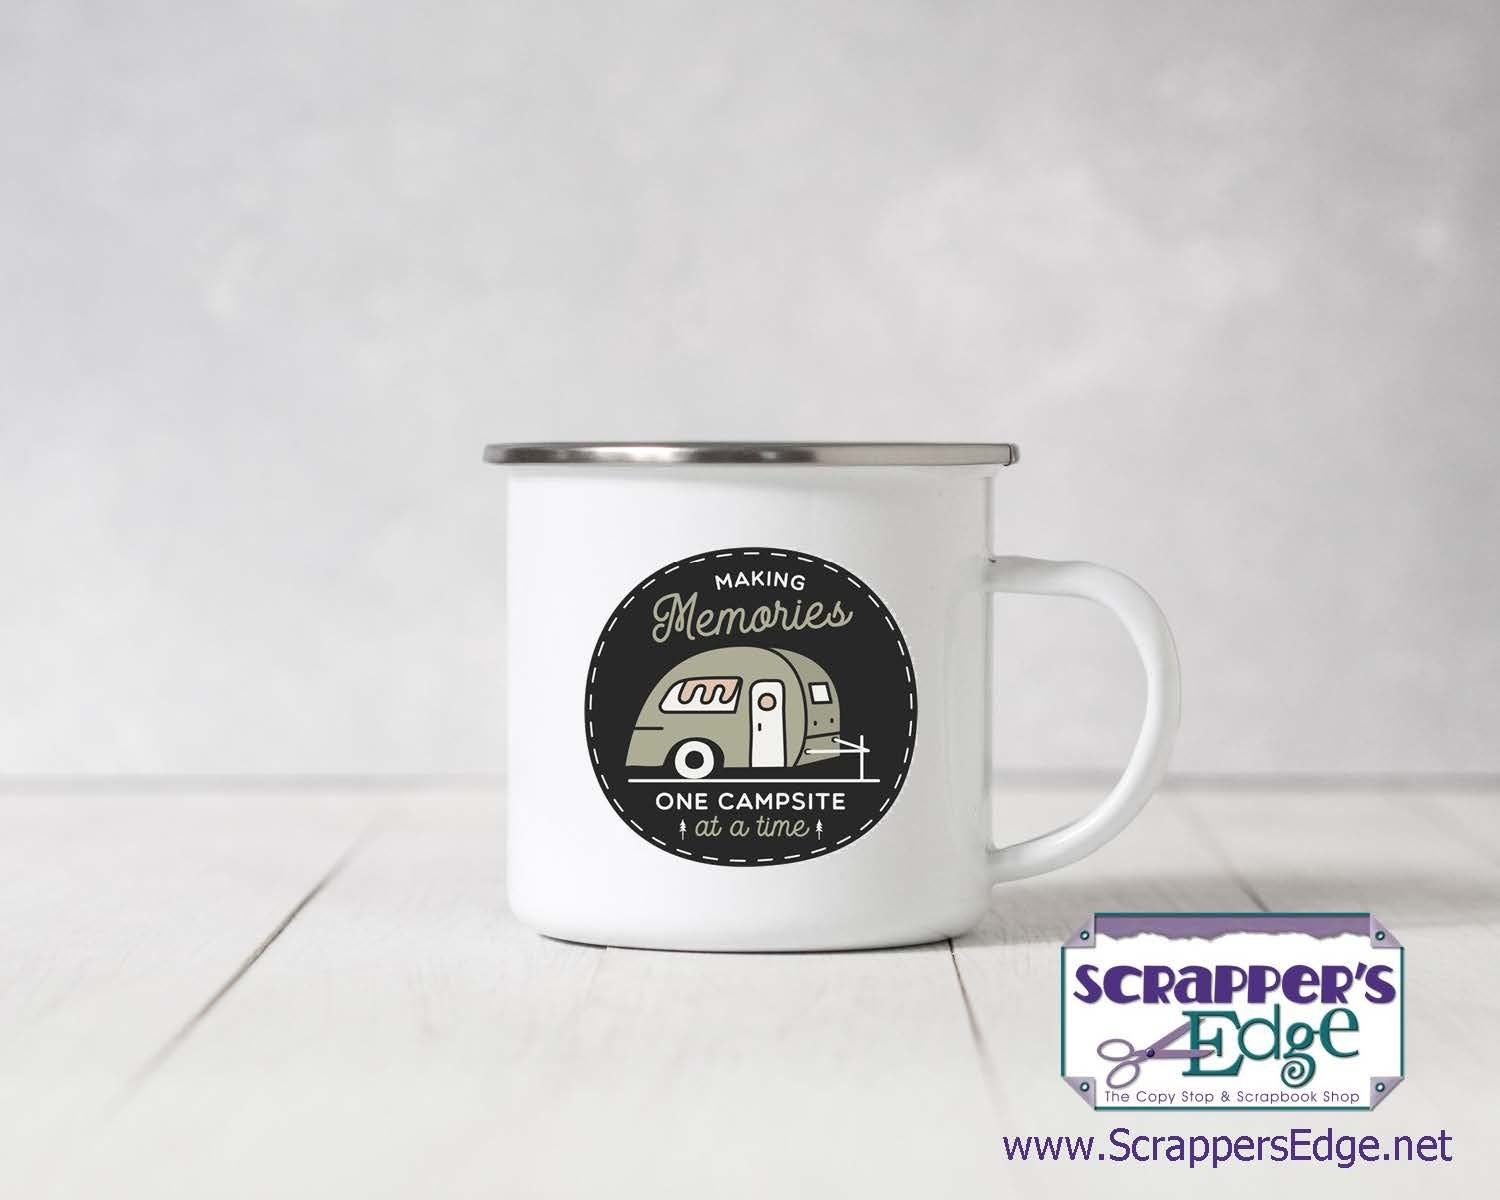 Personalized Camp Mug, Stainless Steel, 11 oz.